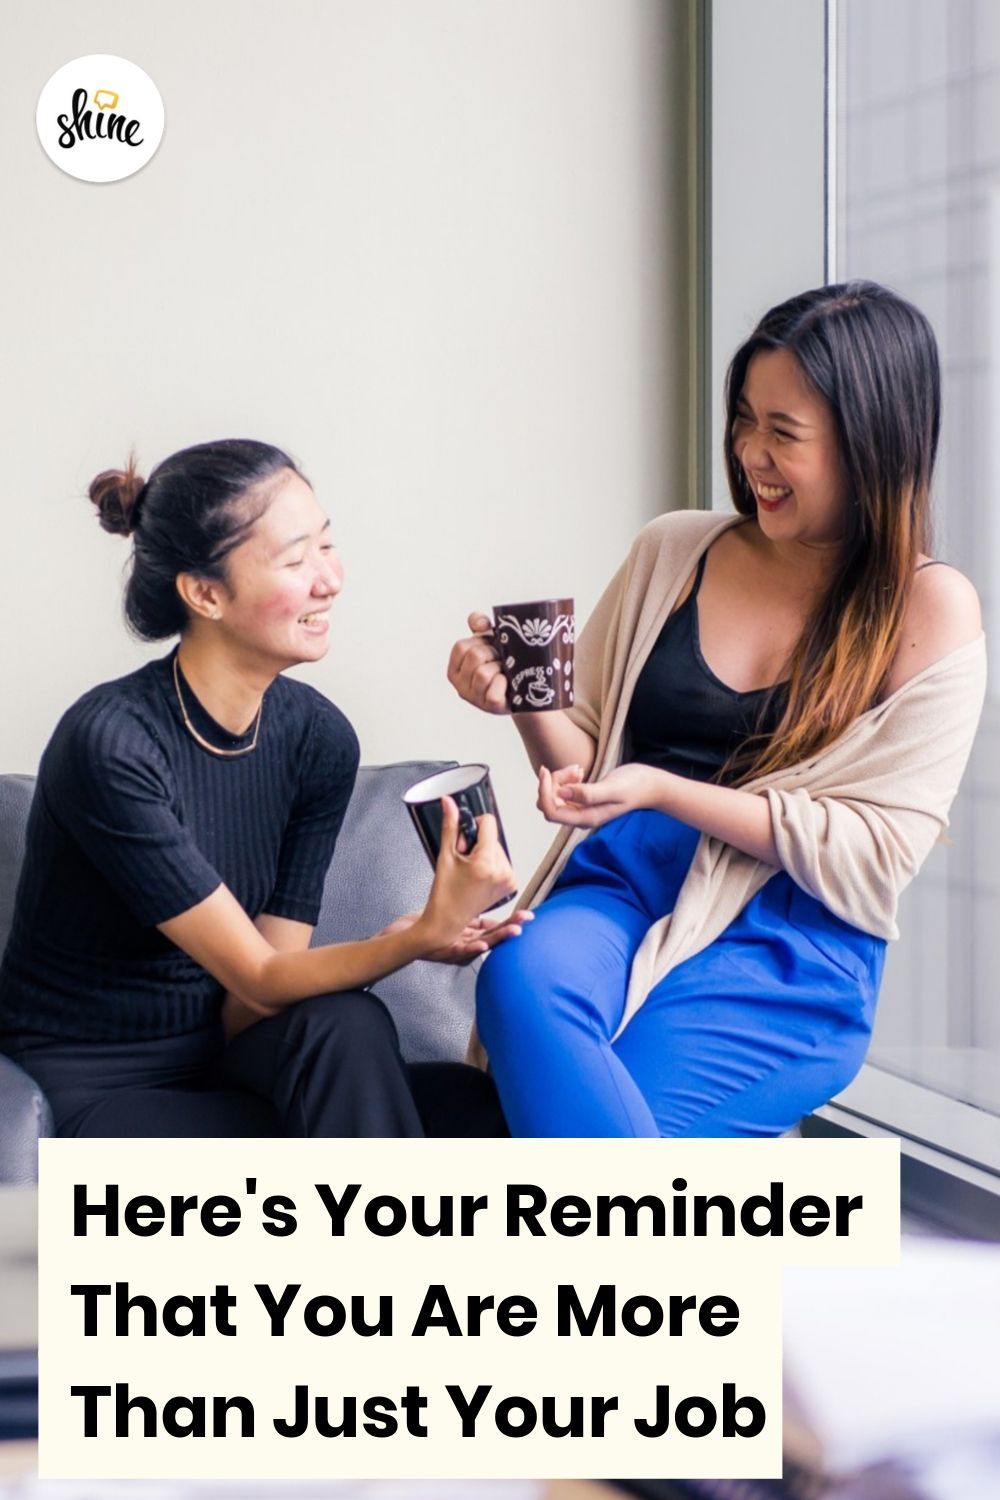 Here's Your Reminder That You Are More Than Just Your Job